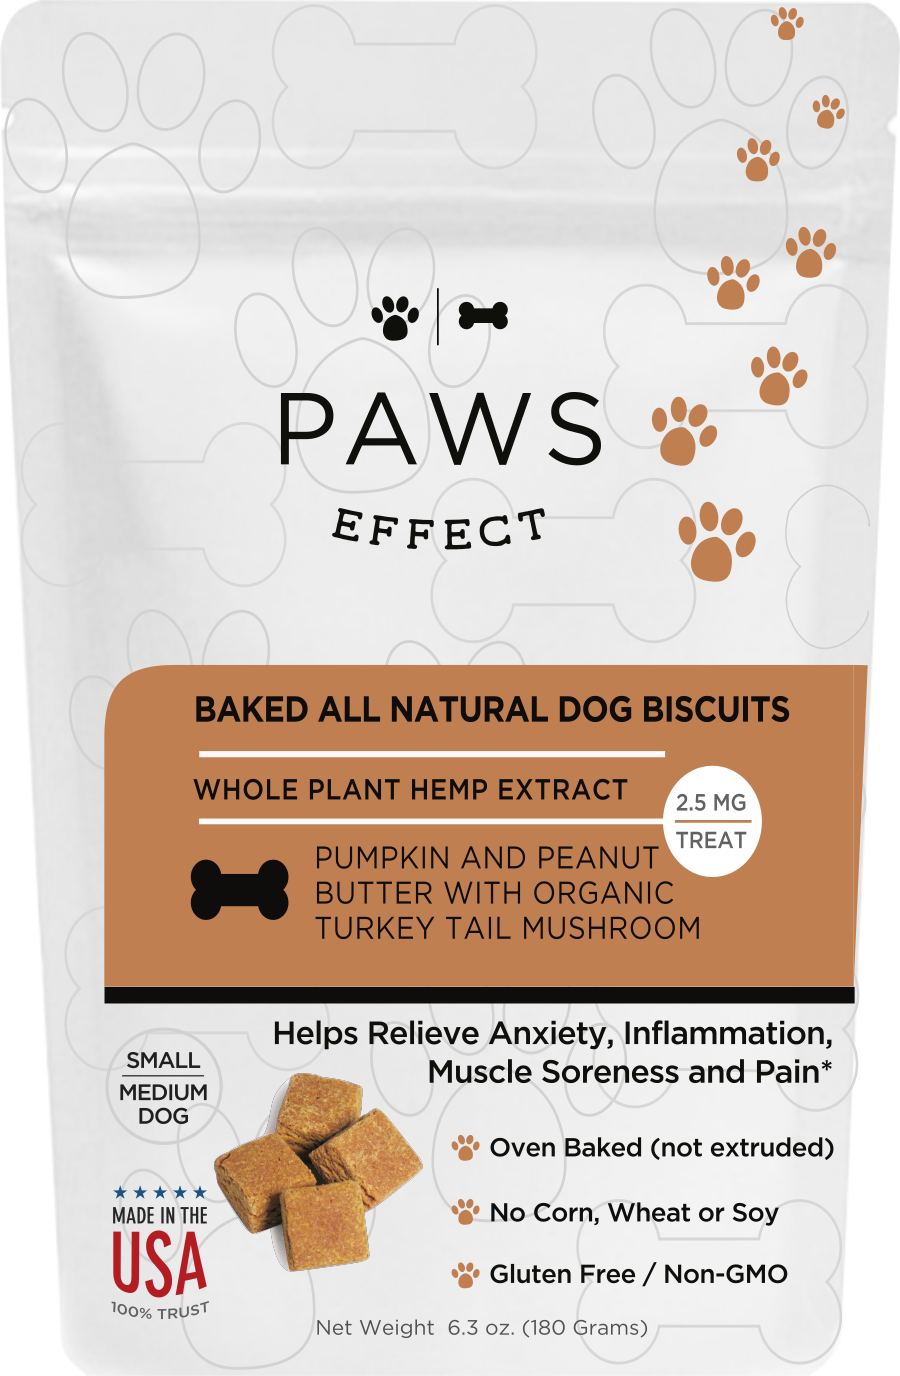 Paws Effect 2.5mg CBD Baked Biscuits for Small/Medium Dogs with Pumpkin and Peanut Butter